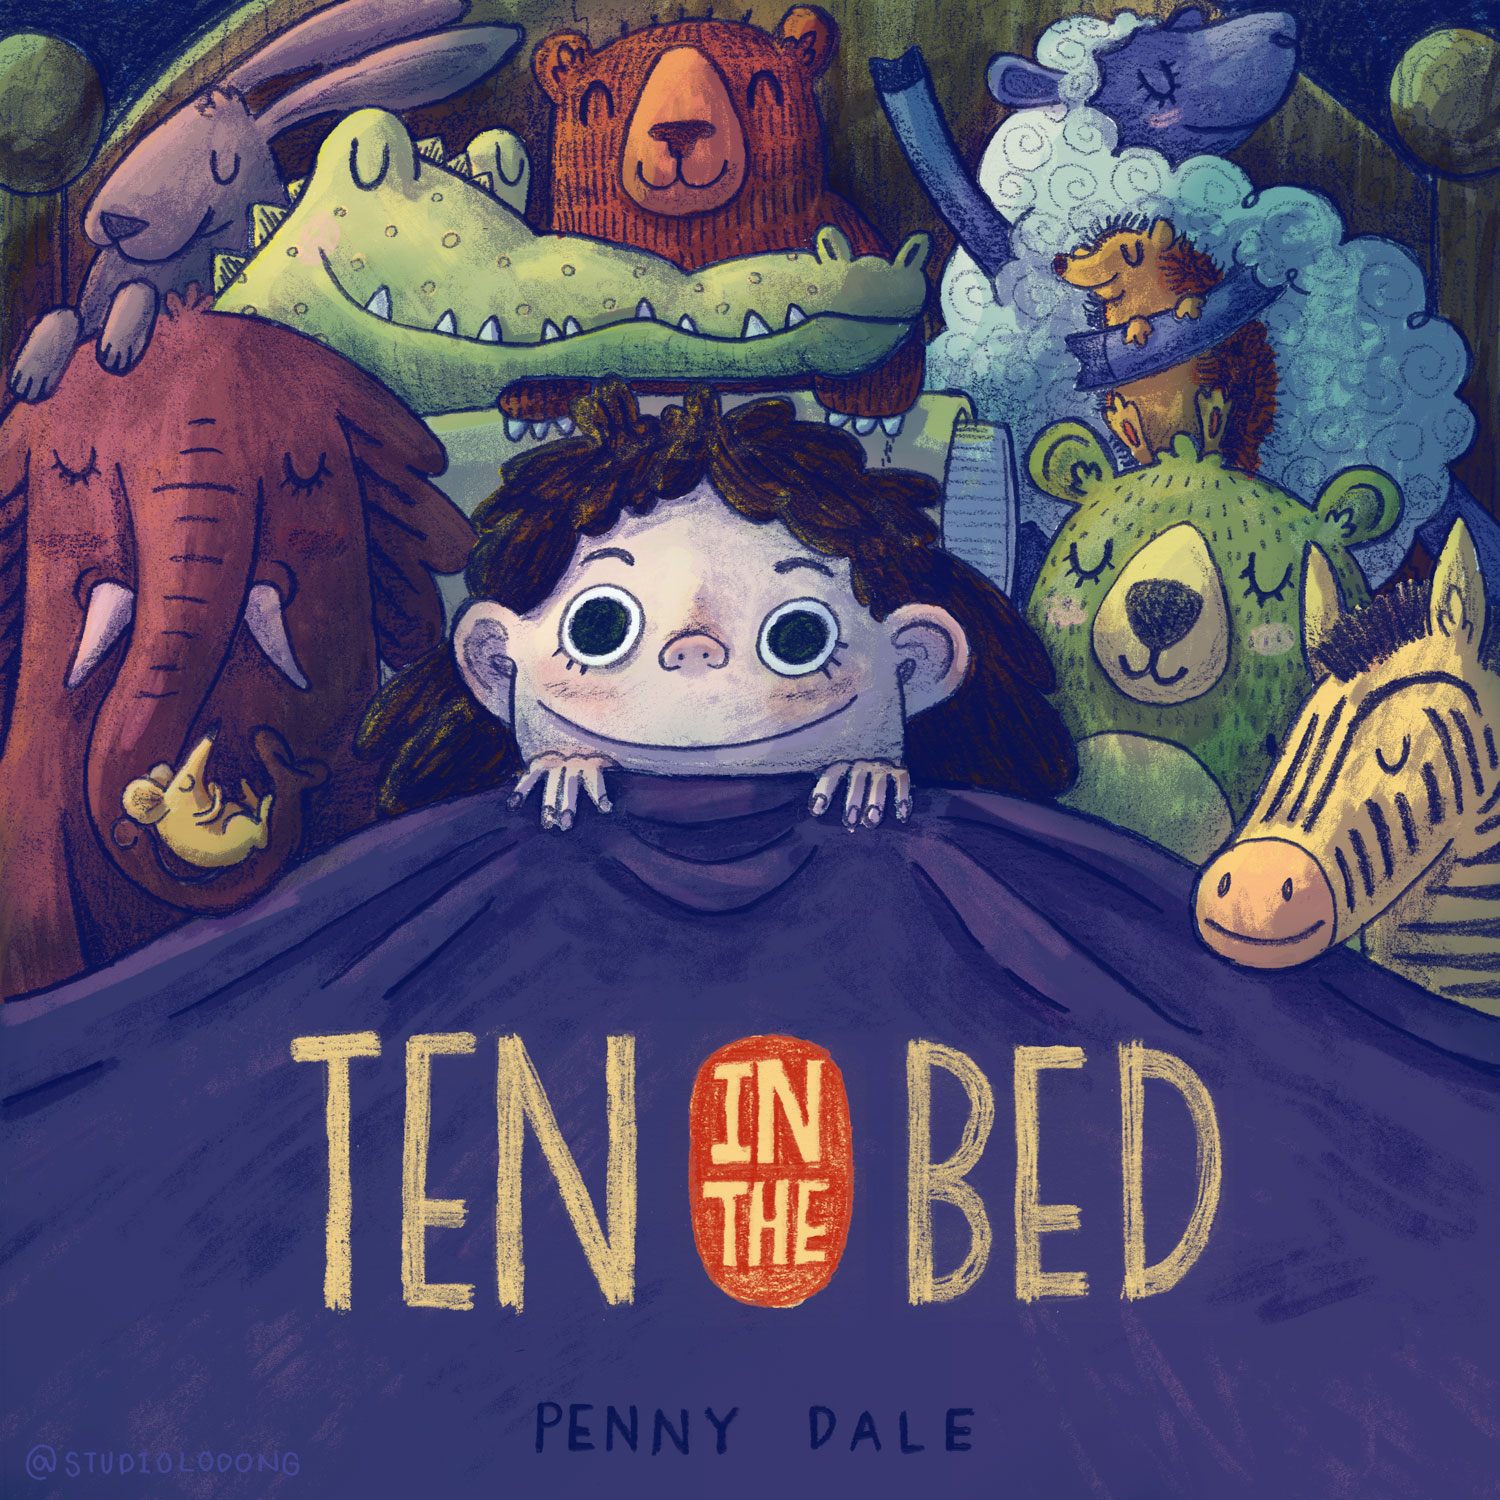 ten in the bed book cover illustration children's book illustration champaign Illinois midwest